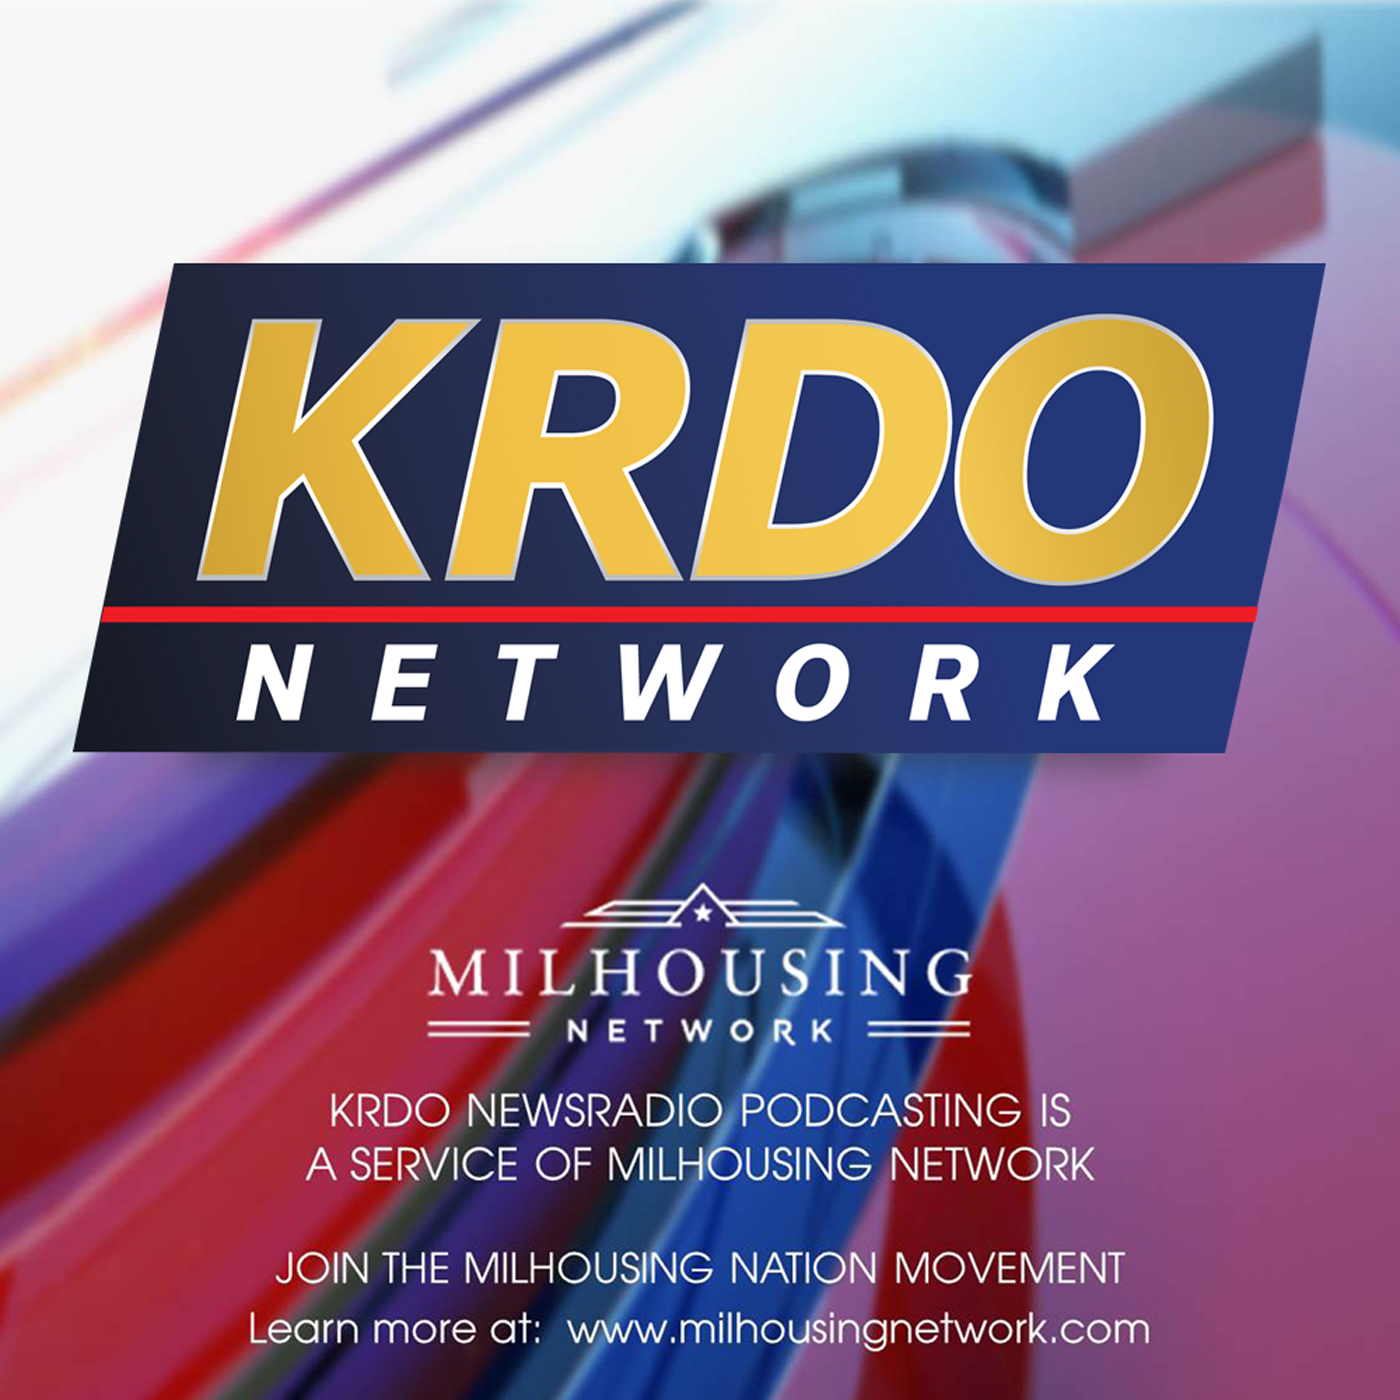 Krdo newsradio 105. 5 fm, 1240 am and 92. 5 fm.